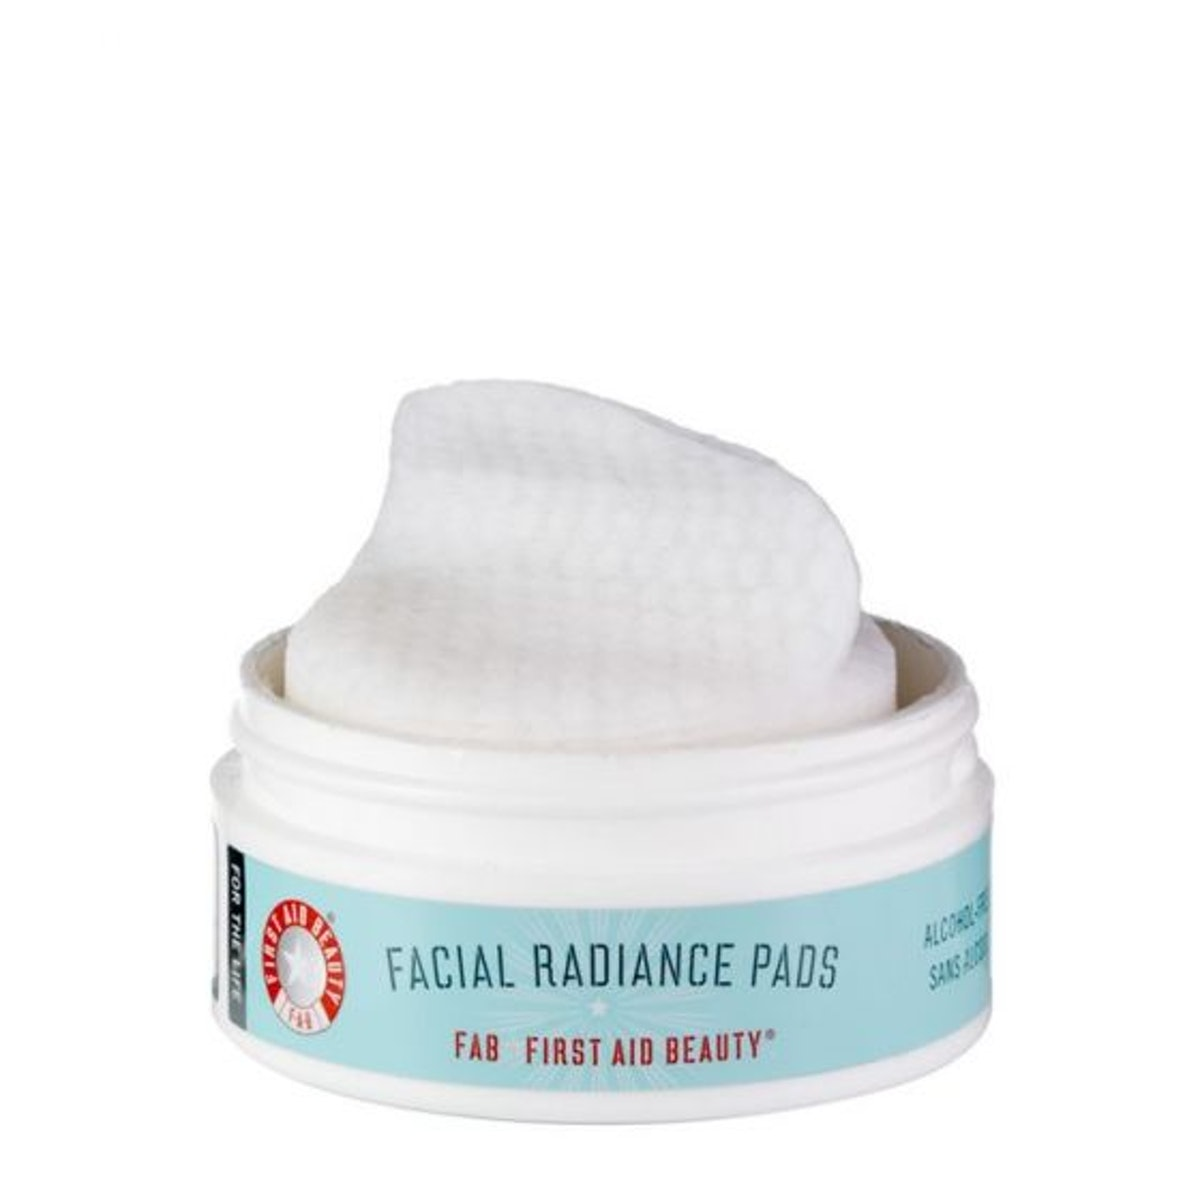 First Aid Beauty Travel Size Facial Radiance Pads